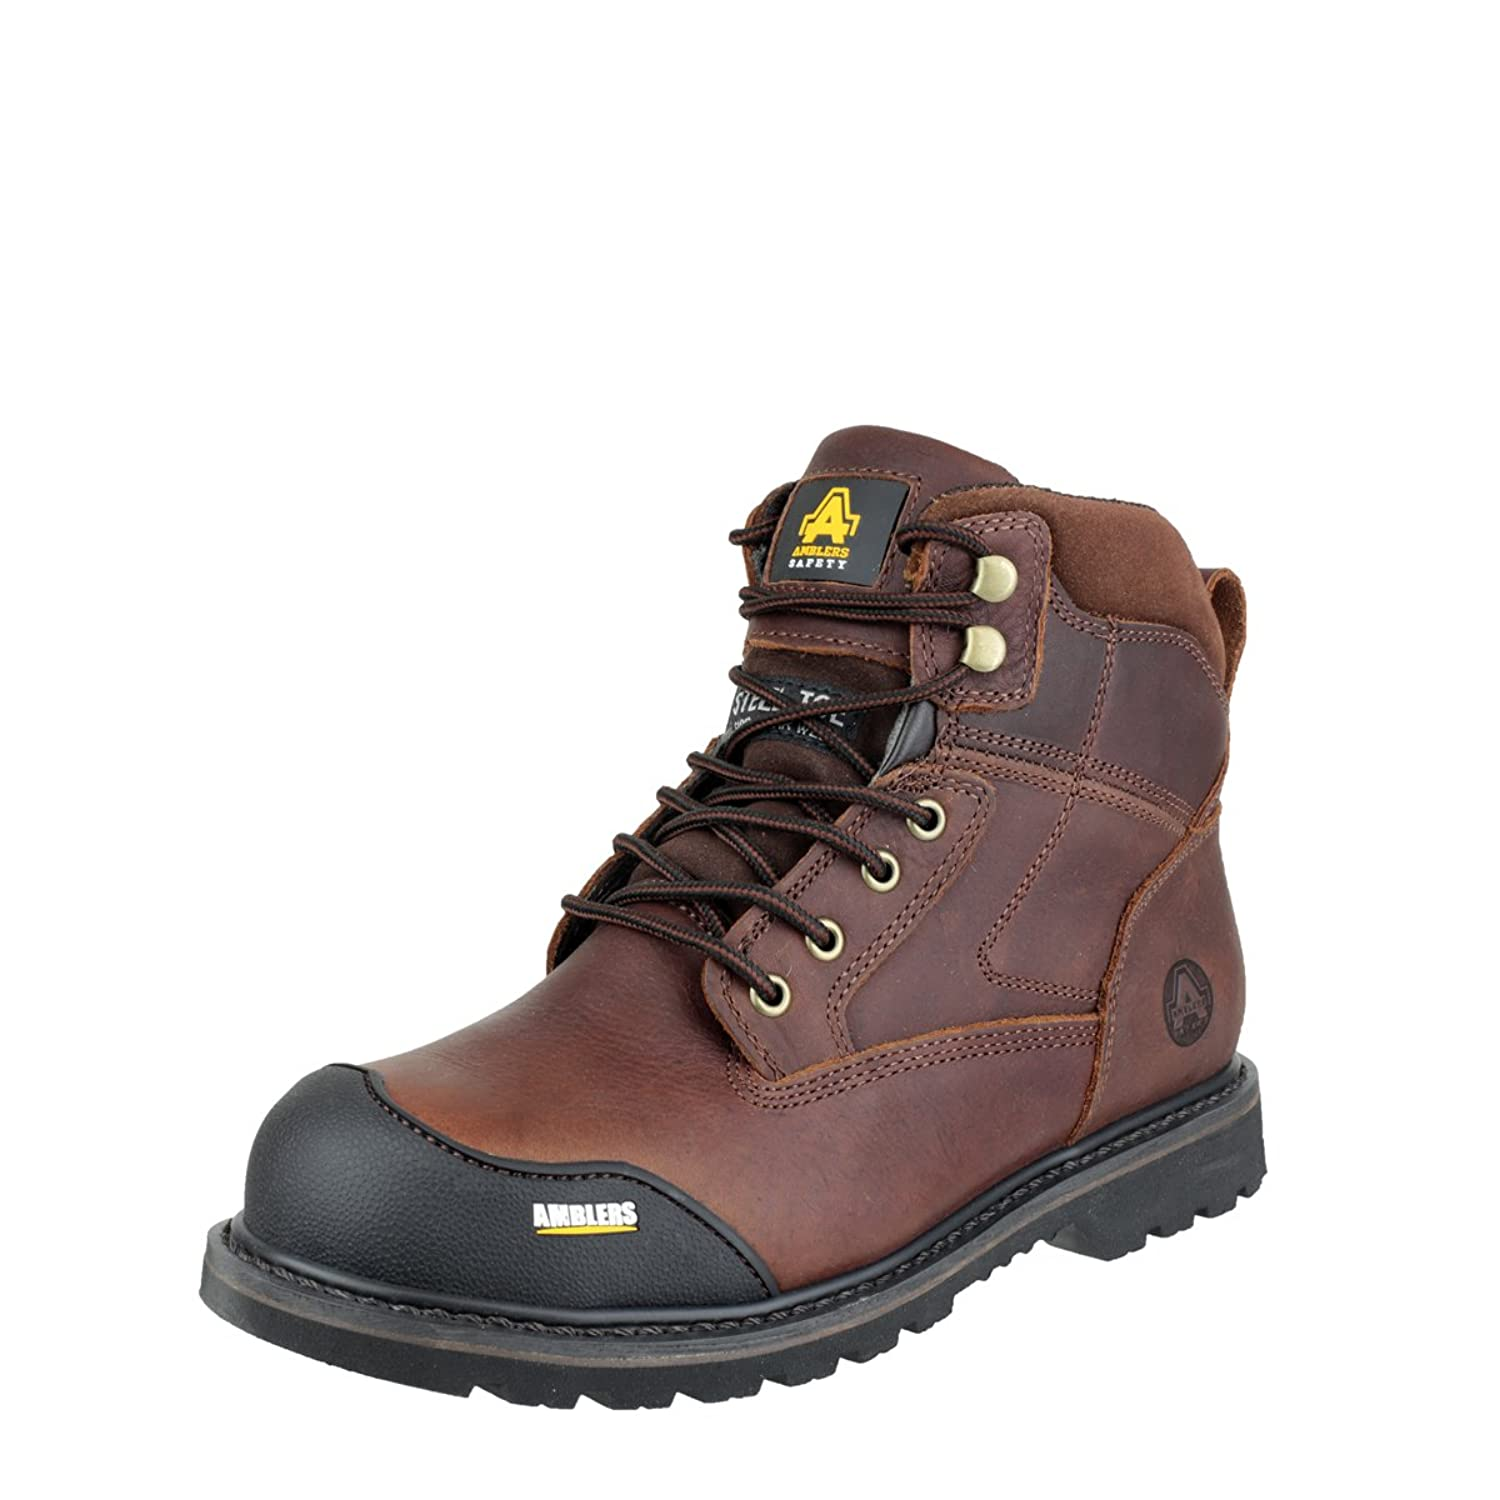 a530d7a7888 Ambers Safety Mens Brown FS167 Rubber Sole Slip Resistant Tumbled Boots